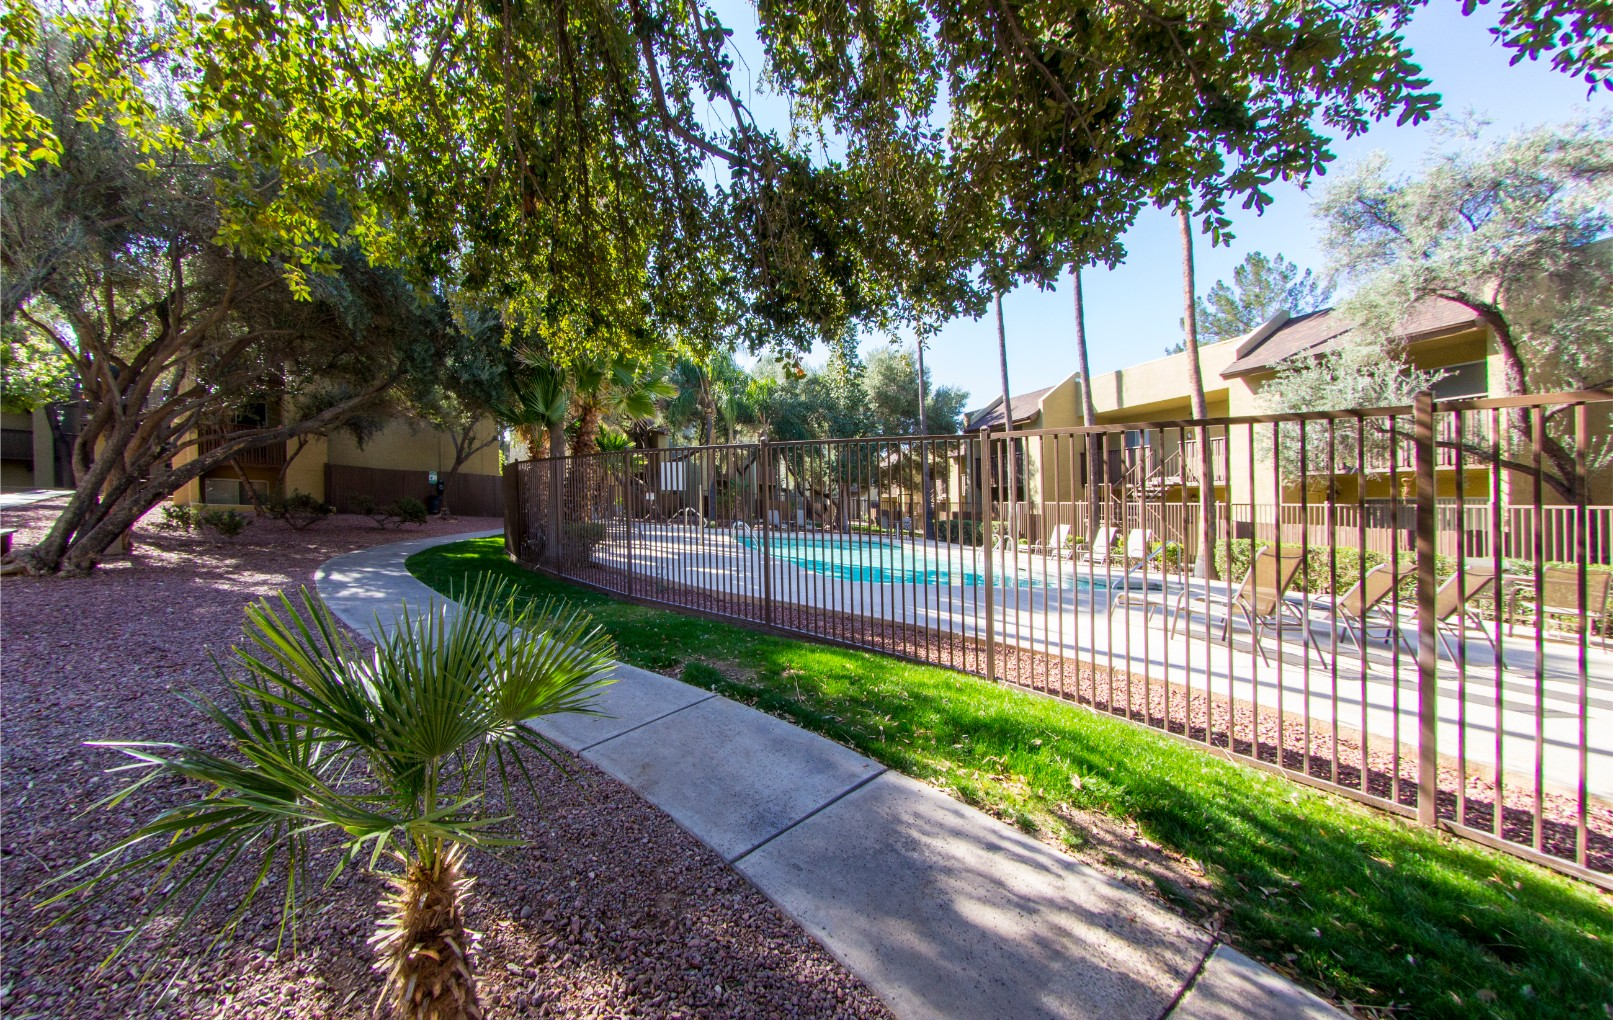 Exterior & Landscaping at River Oaks Apartments in Tucson, AZ